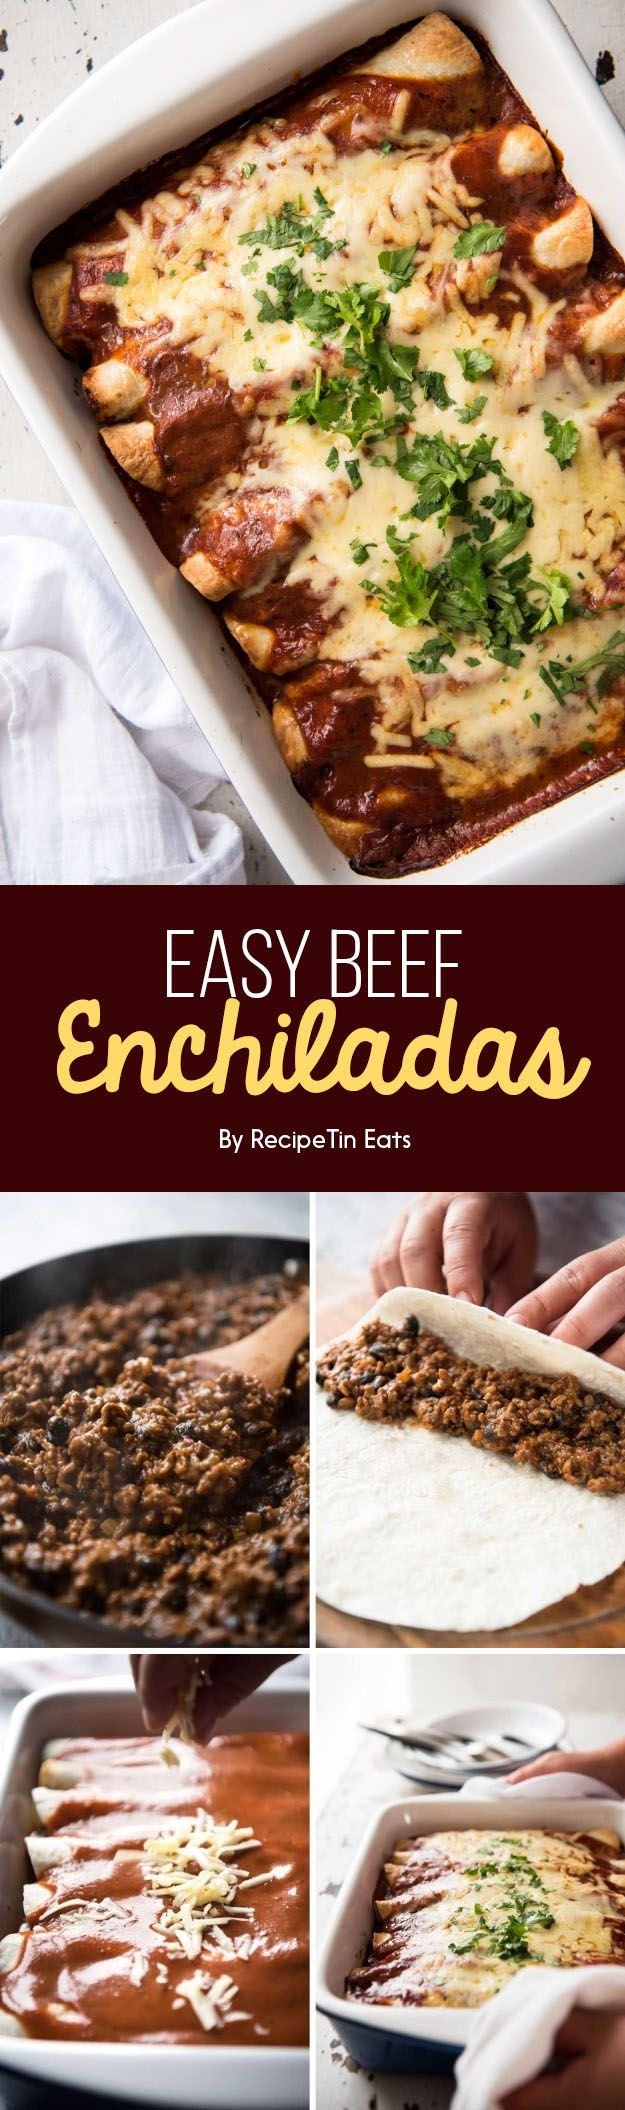 Easy Beef Enchiladas | 7 Dinners To Make This Week